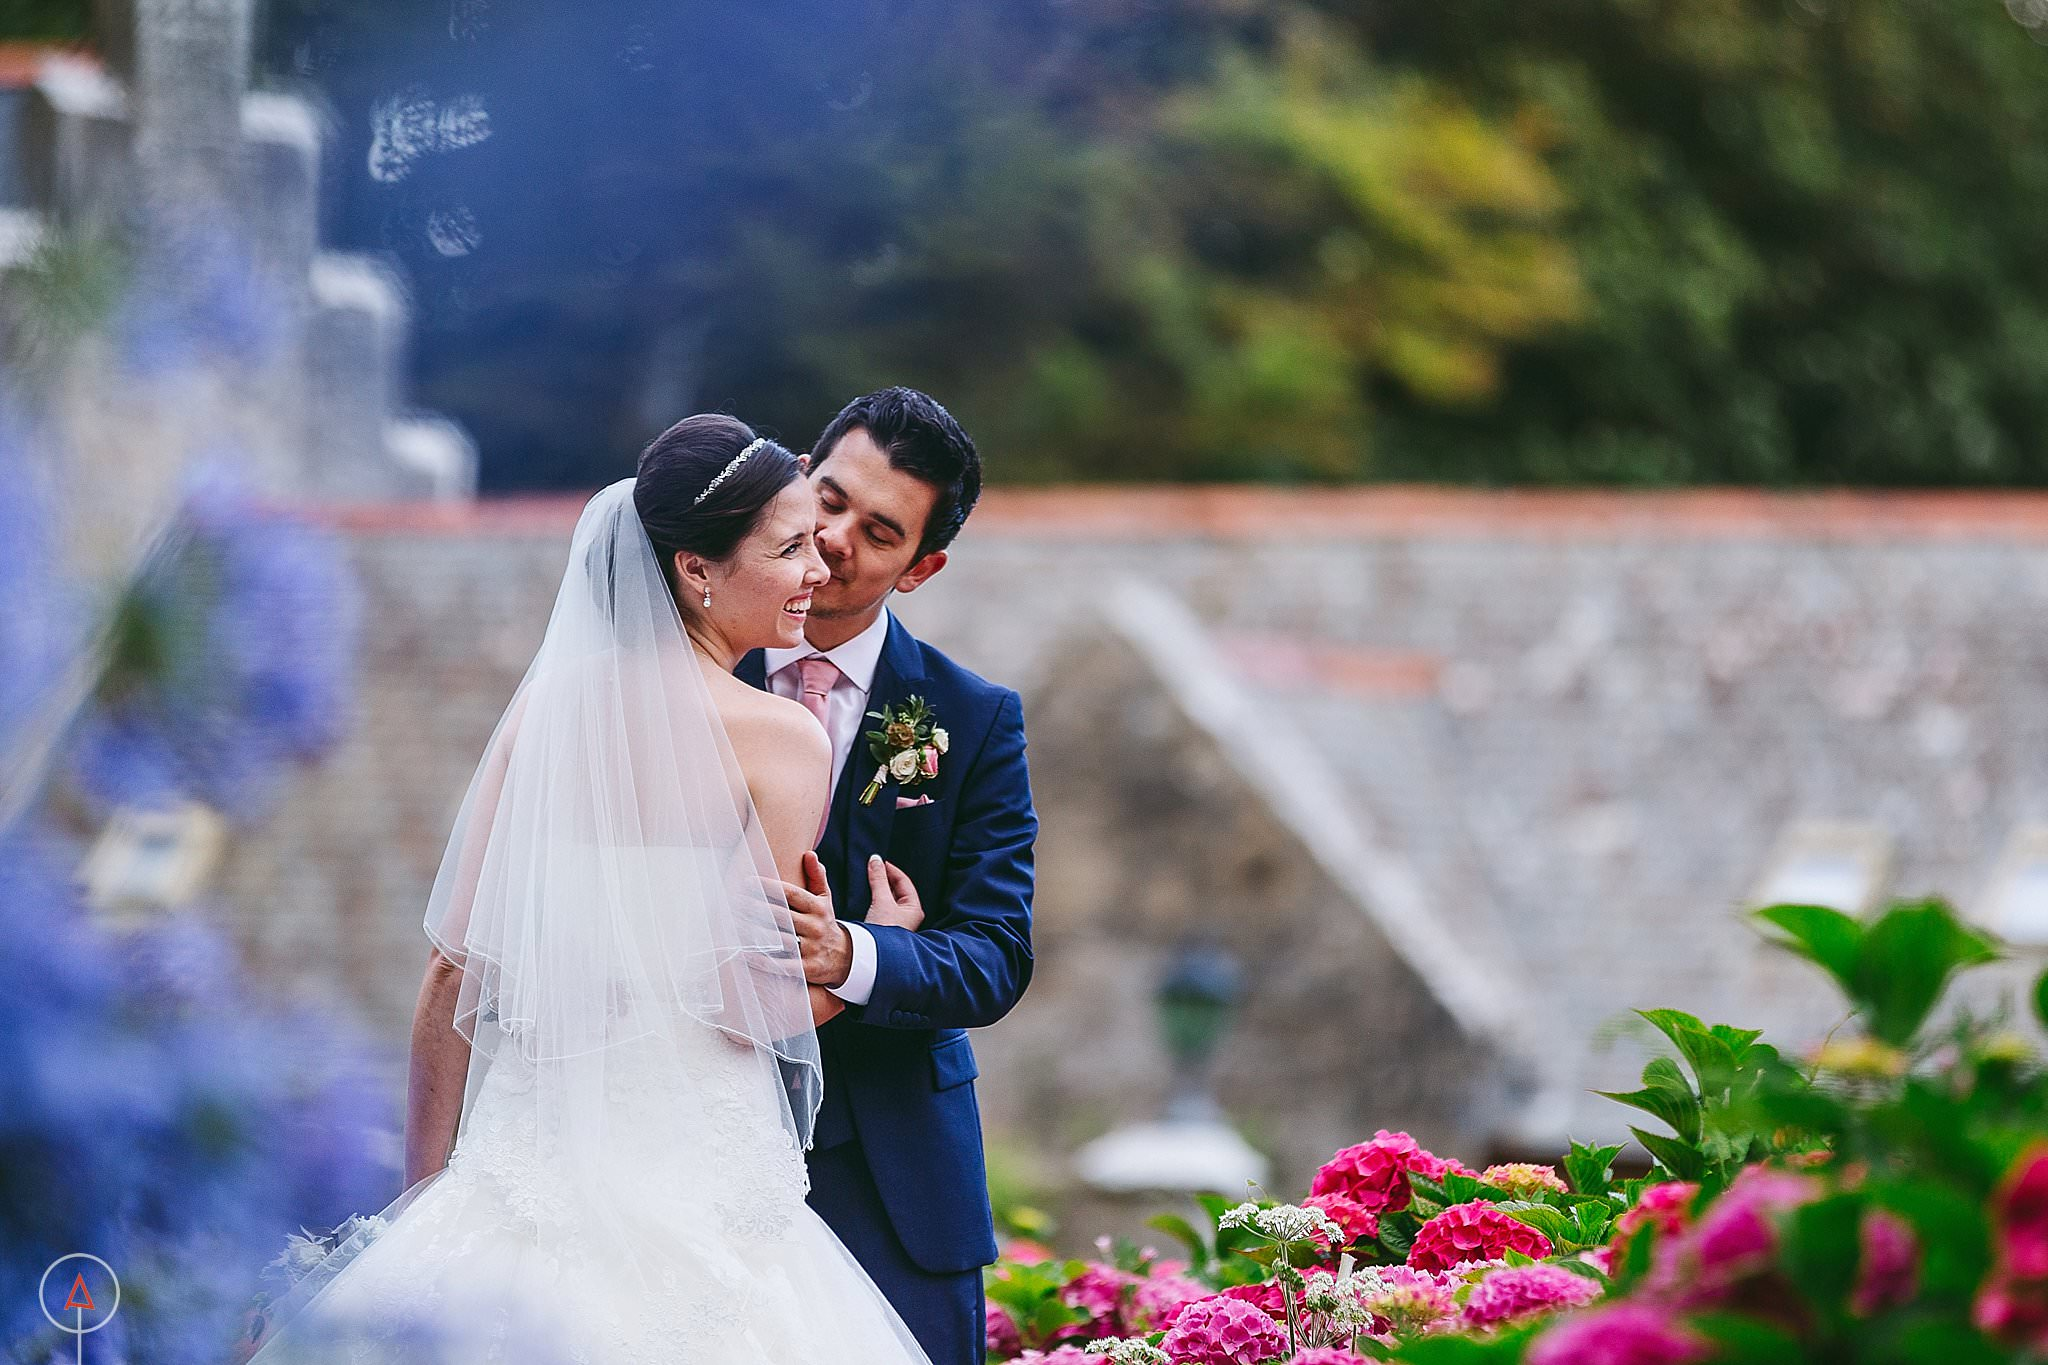 st-donats-llantwit-major-wedding-photography_0107